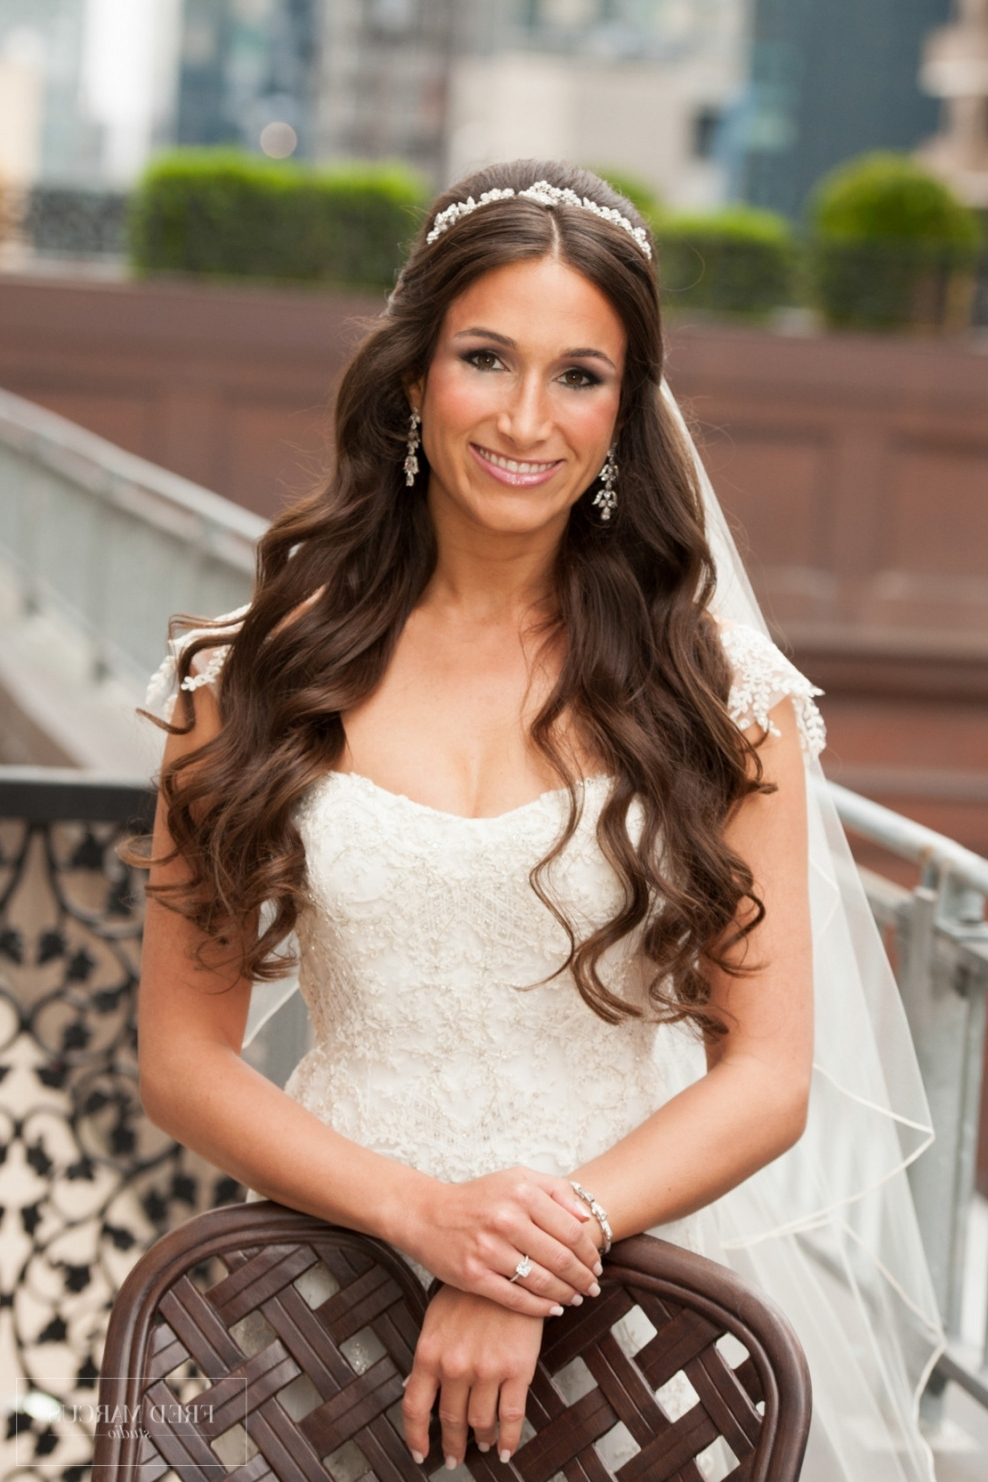 Bridal Hairstyles Half Up Half Down With Veil And Tiara – 42Lions Regarding Famous Wedding Hairstyles For Long Hair Down With Veil And Tiara (View 7 of 15)